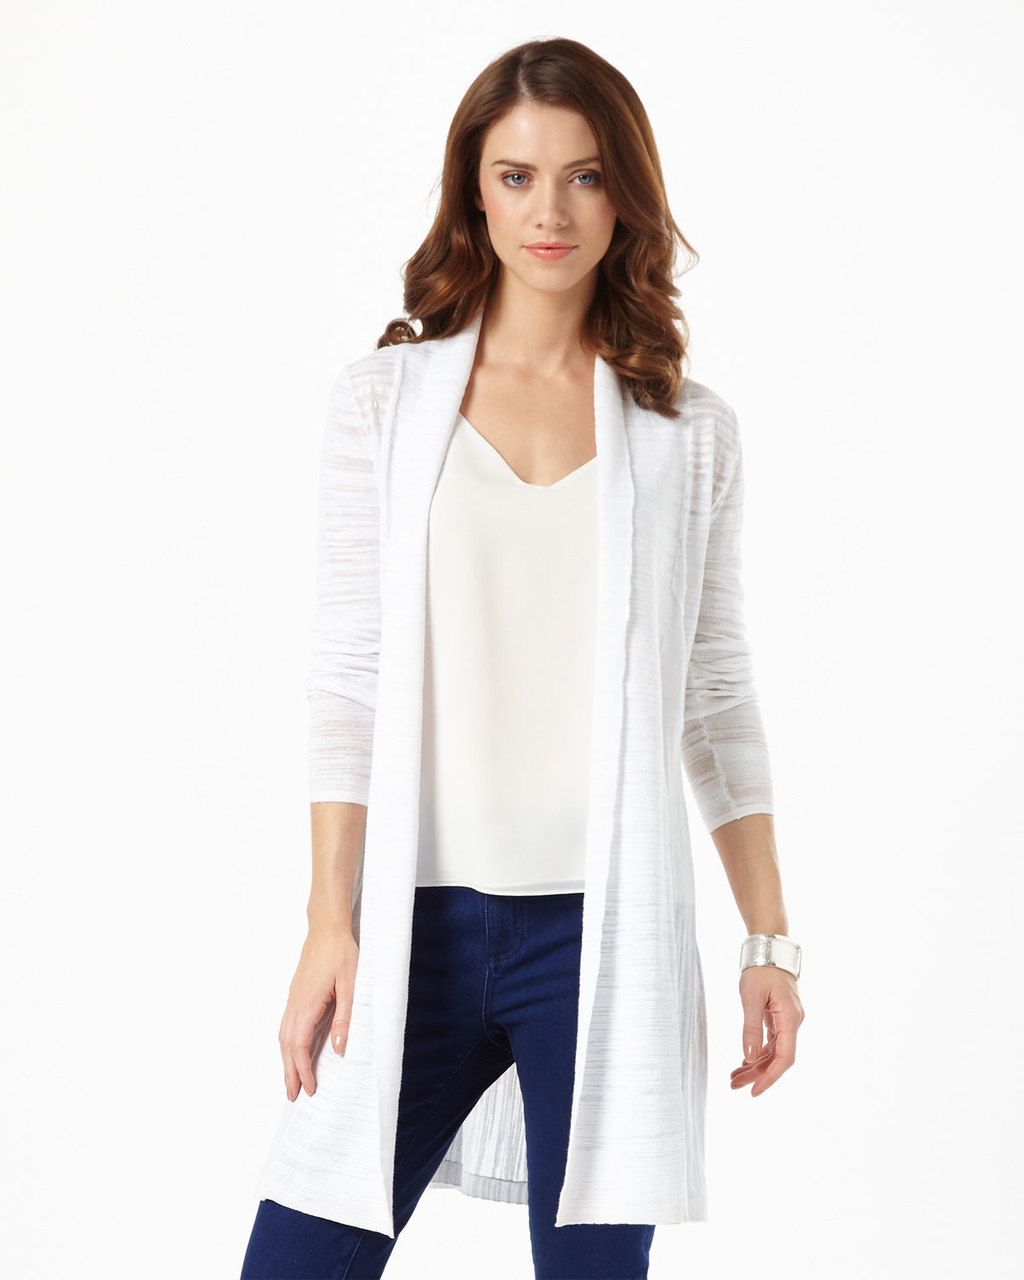 Slub Lili Longline Cardi - pattern: plain; neckline: collarless open; style: open front; length: on the knee; predominant colour: white; occasions: casual, creative work; fibres: cotton - mix; fit: standard fit; sleeve length: long sleeve; sleeve style: standard; texture group: knits/crochet; pattern type: knitted - fine stitch; season: s/s 2016; wardrobe: basic